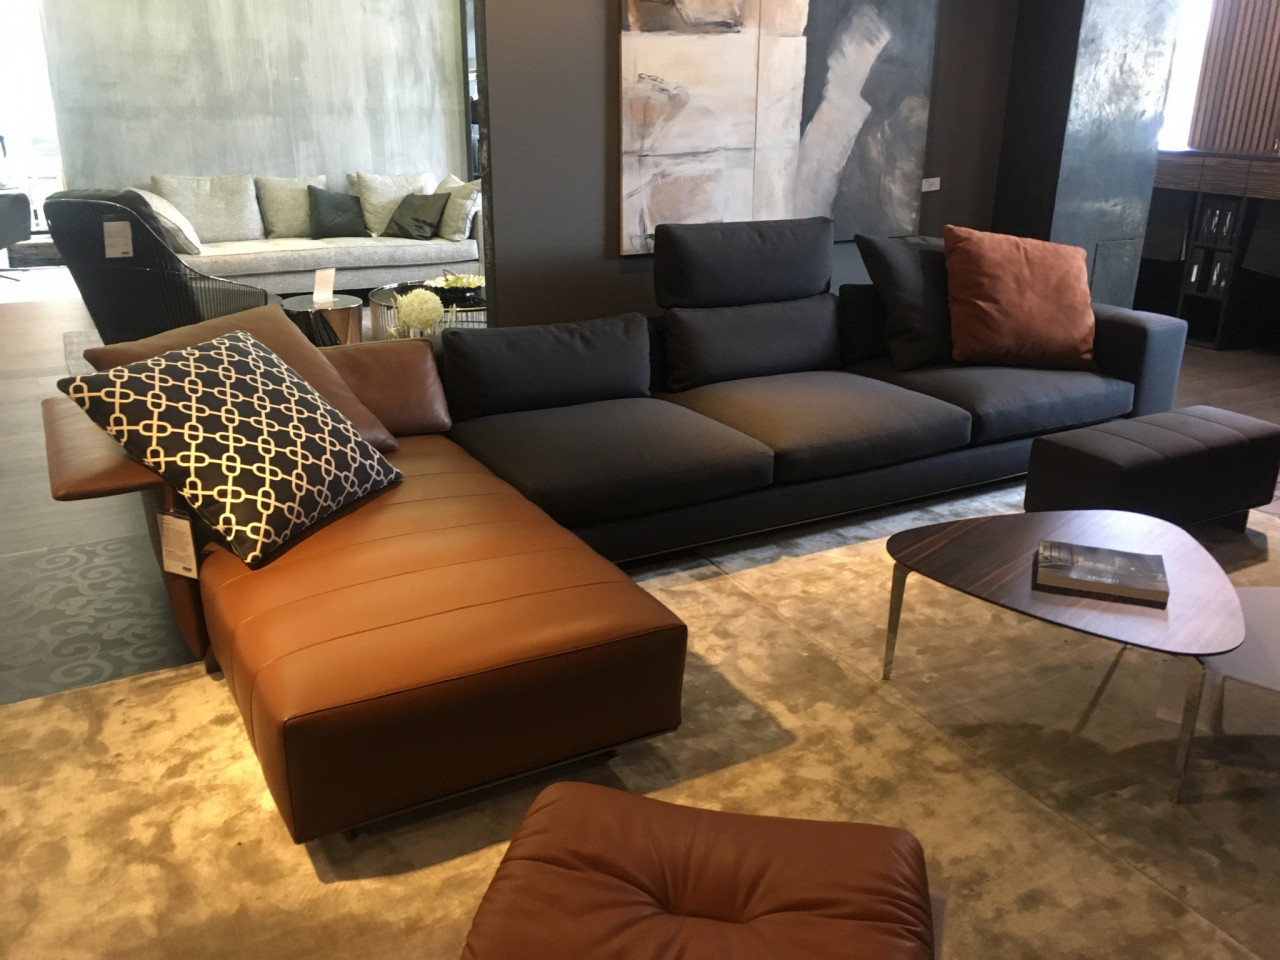 Full Size of Minotti Sofa Alexander Dimensions Lawrence Outlet Range List India Uk Cad Block Cost Mit Relaxfunktion Elektrisch L Schlaffunktion Freistil München Led Sofa Minotti Sofa